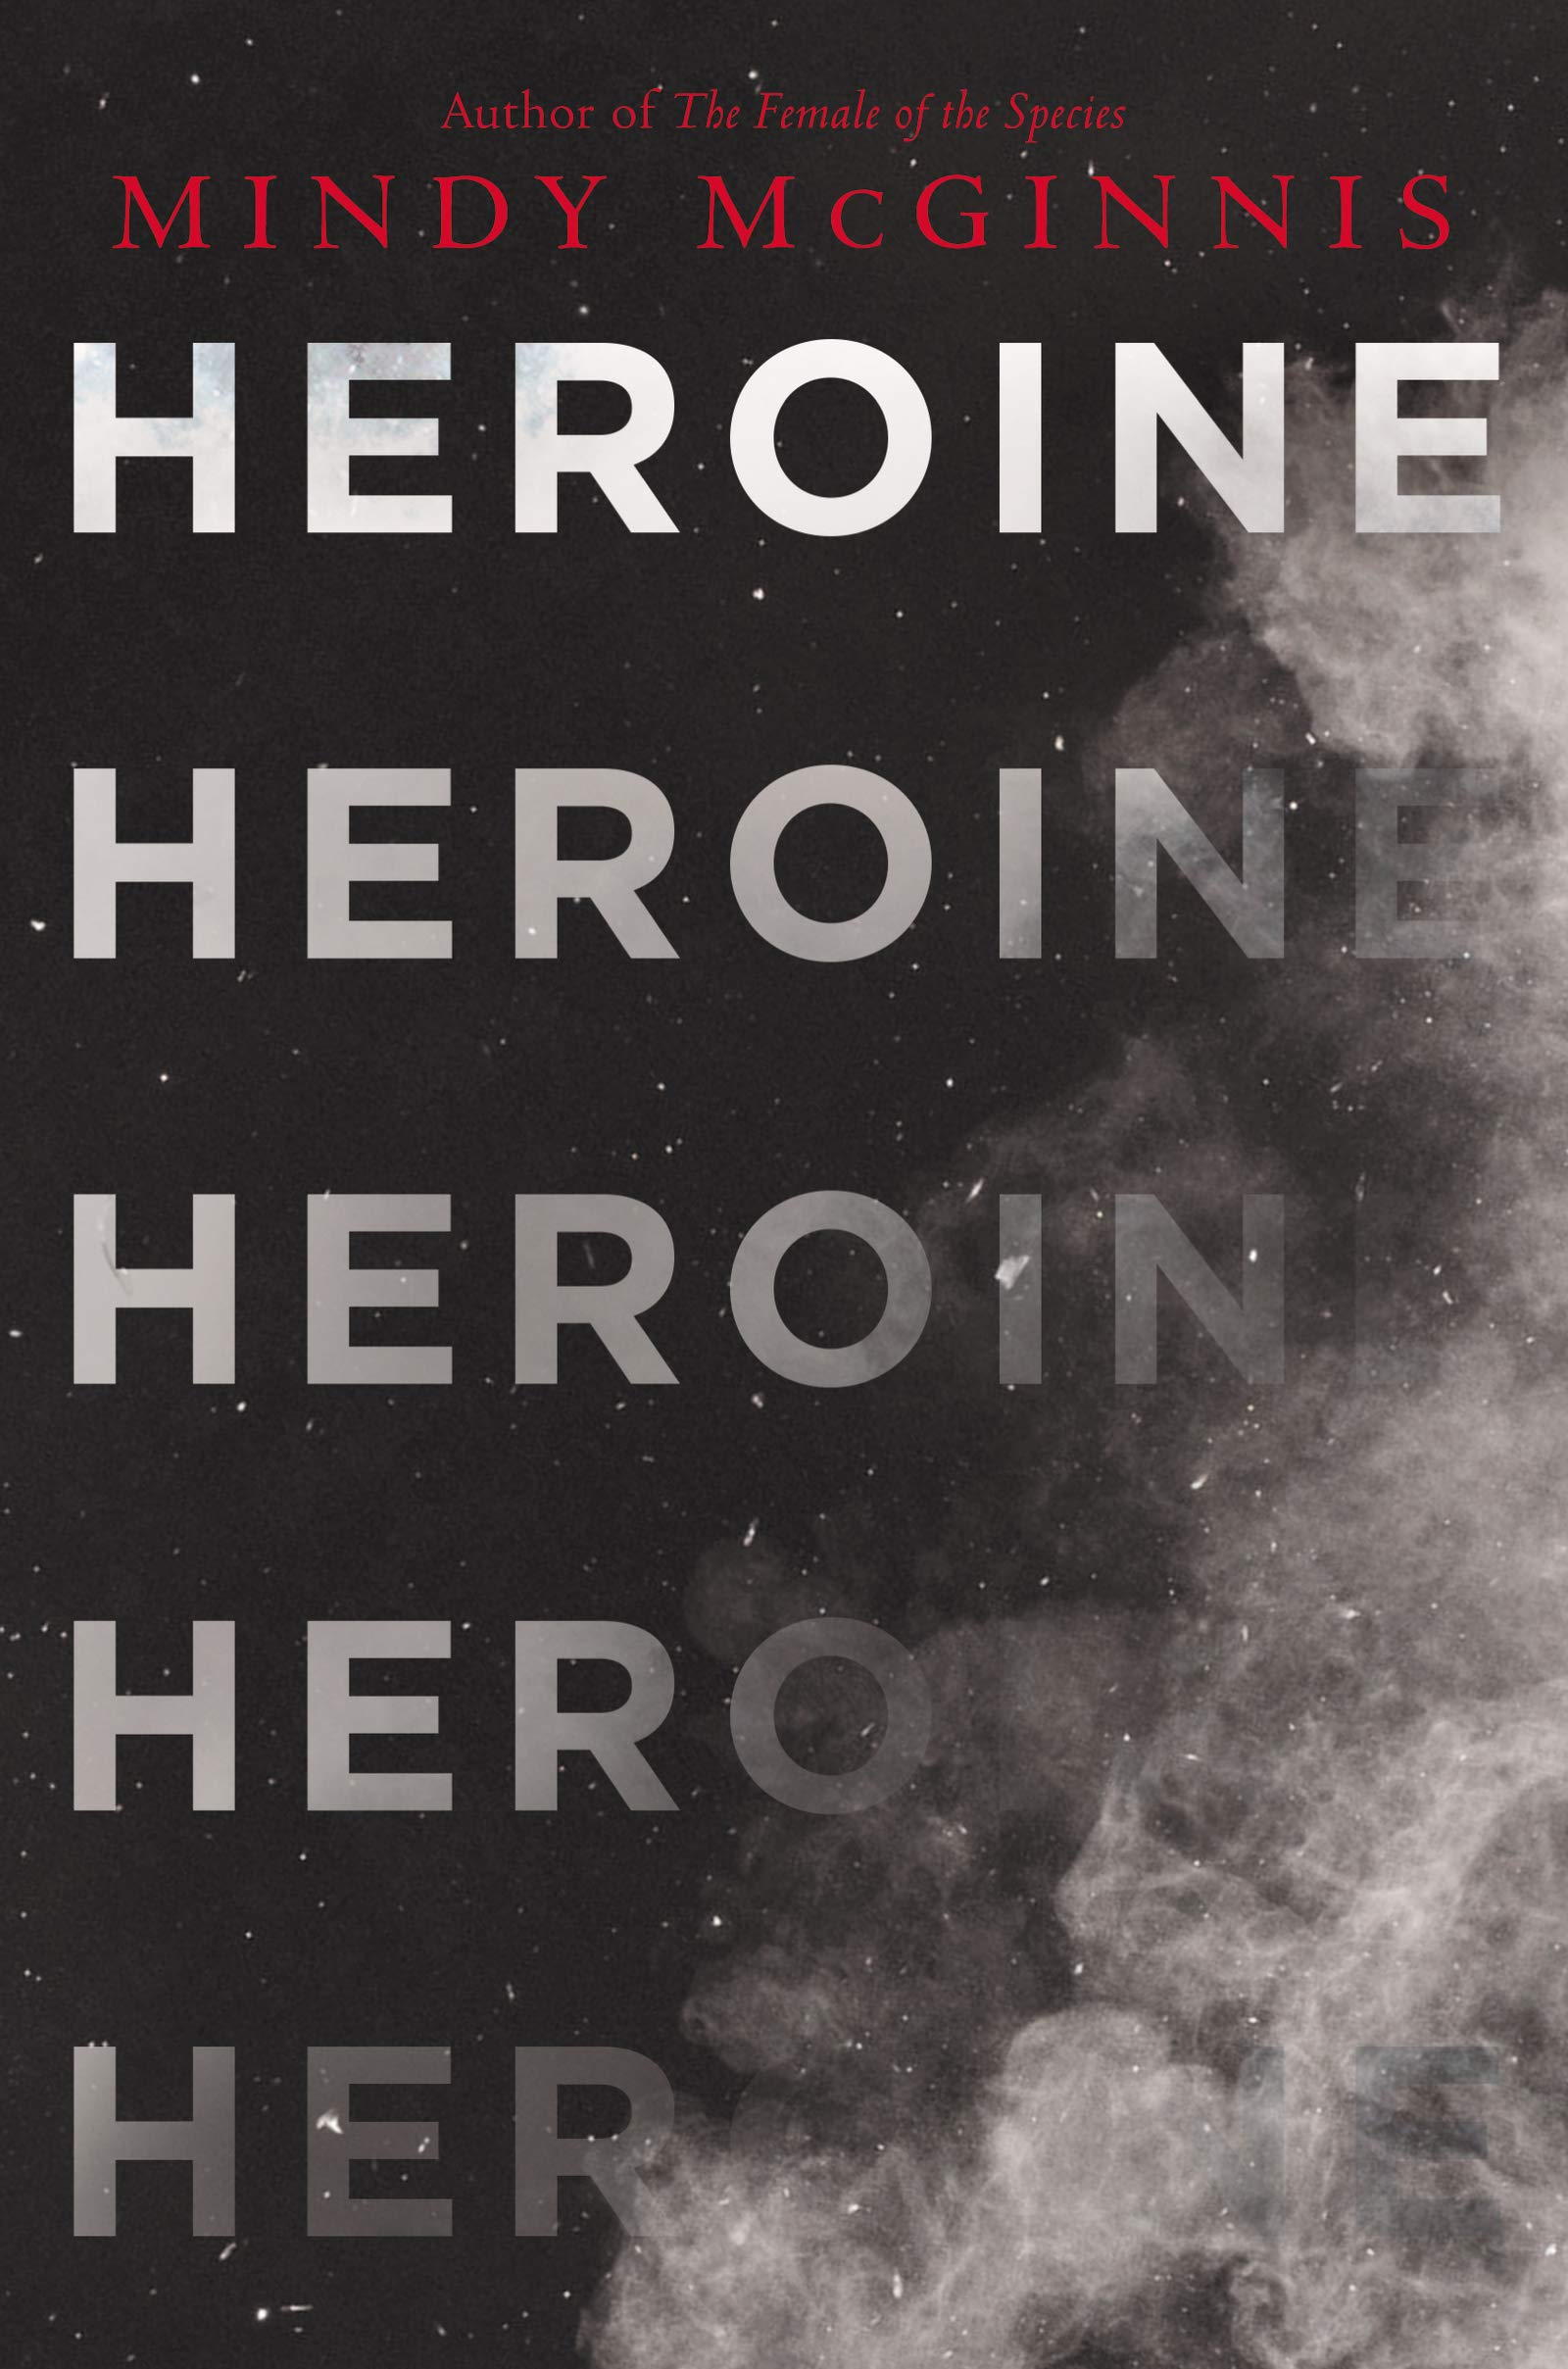 Image result for heroine mindy mcginnis